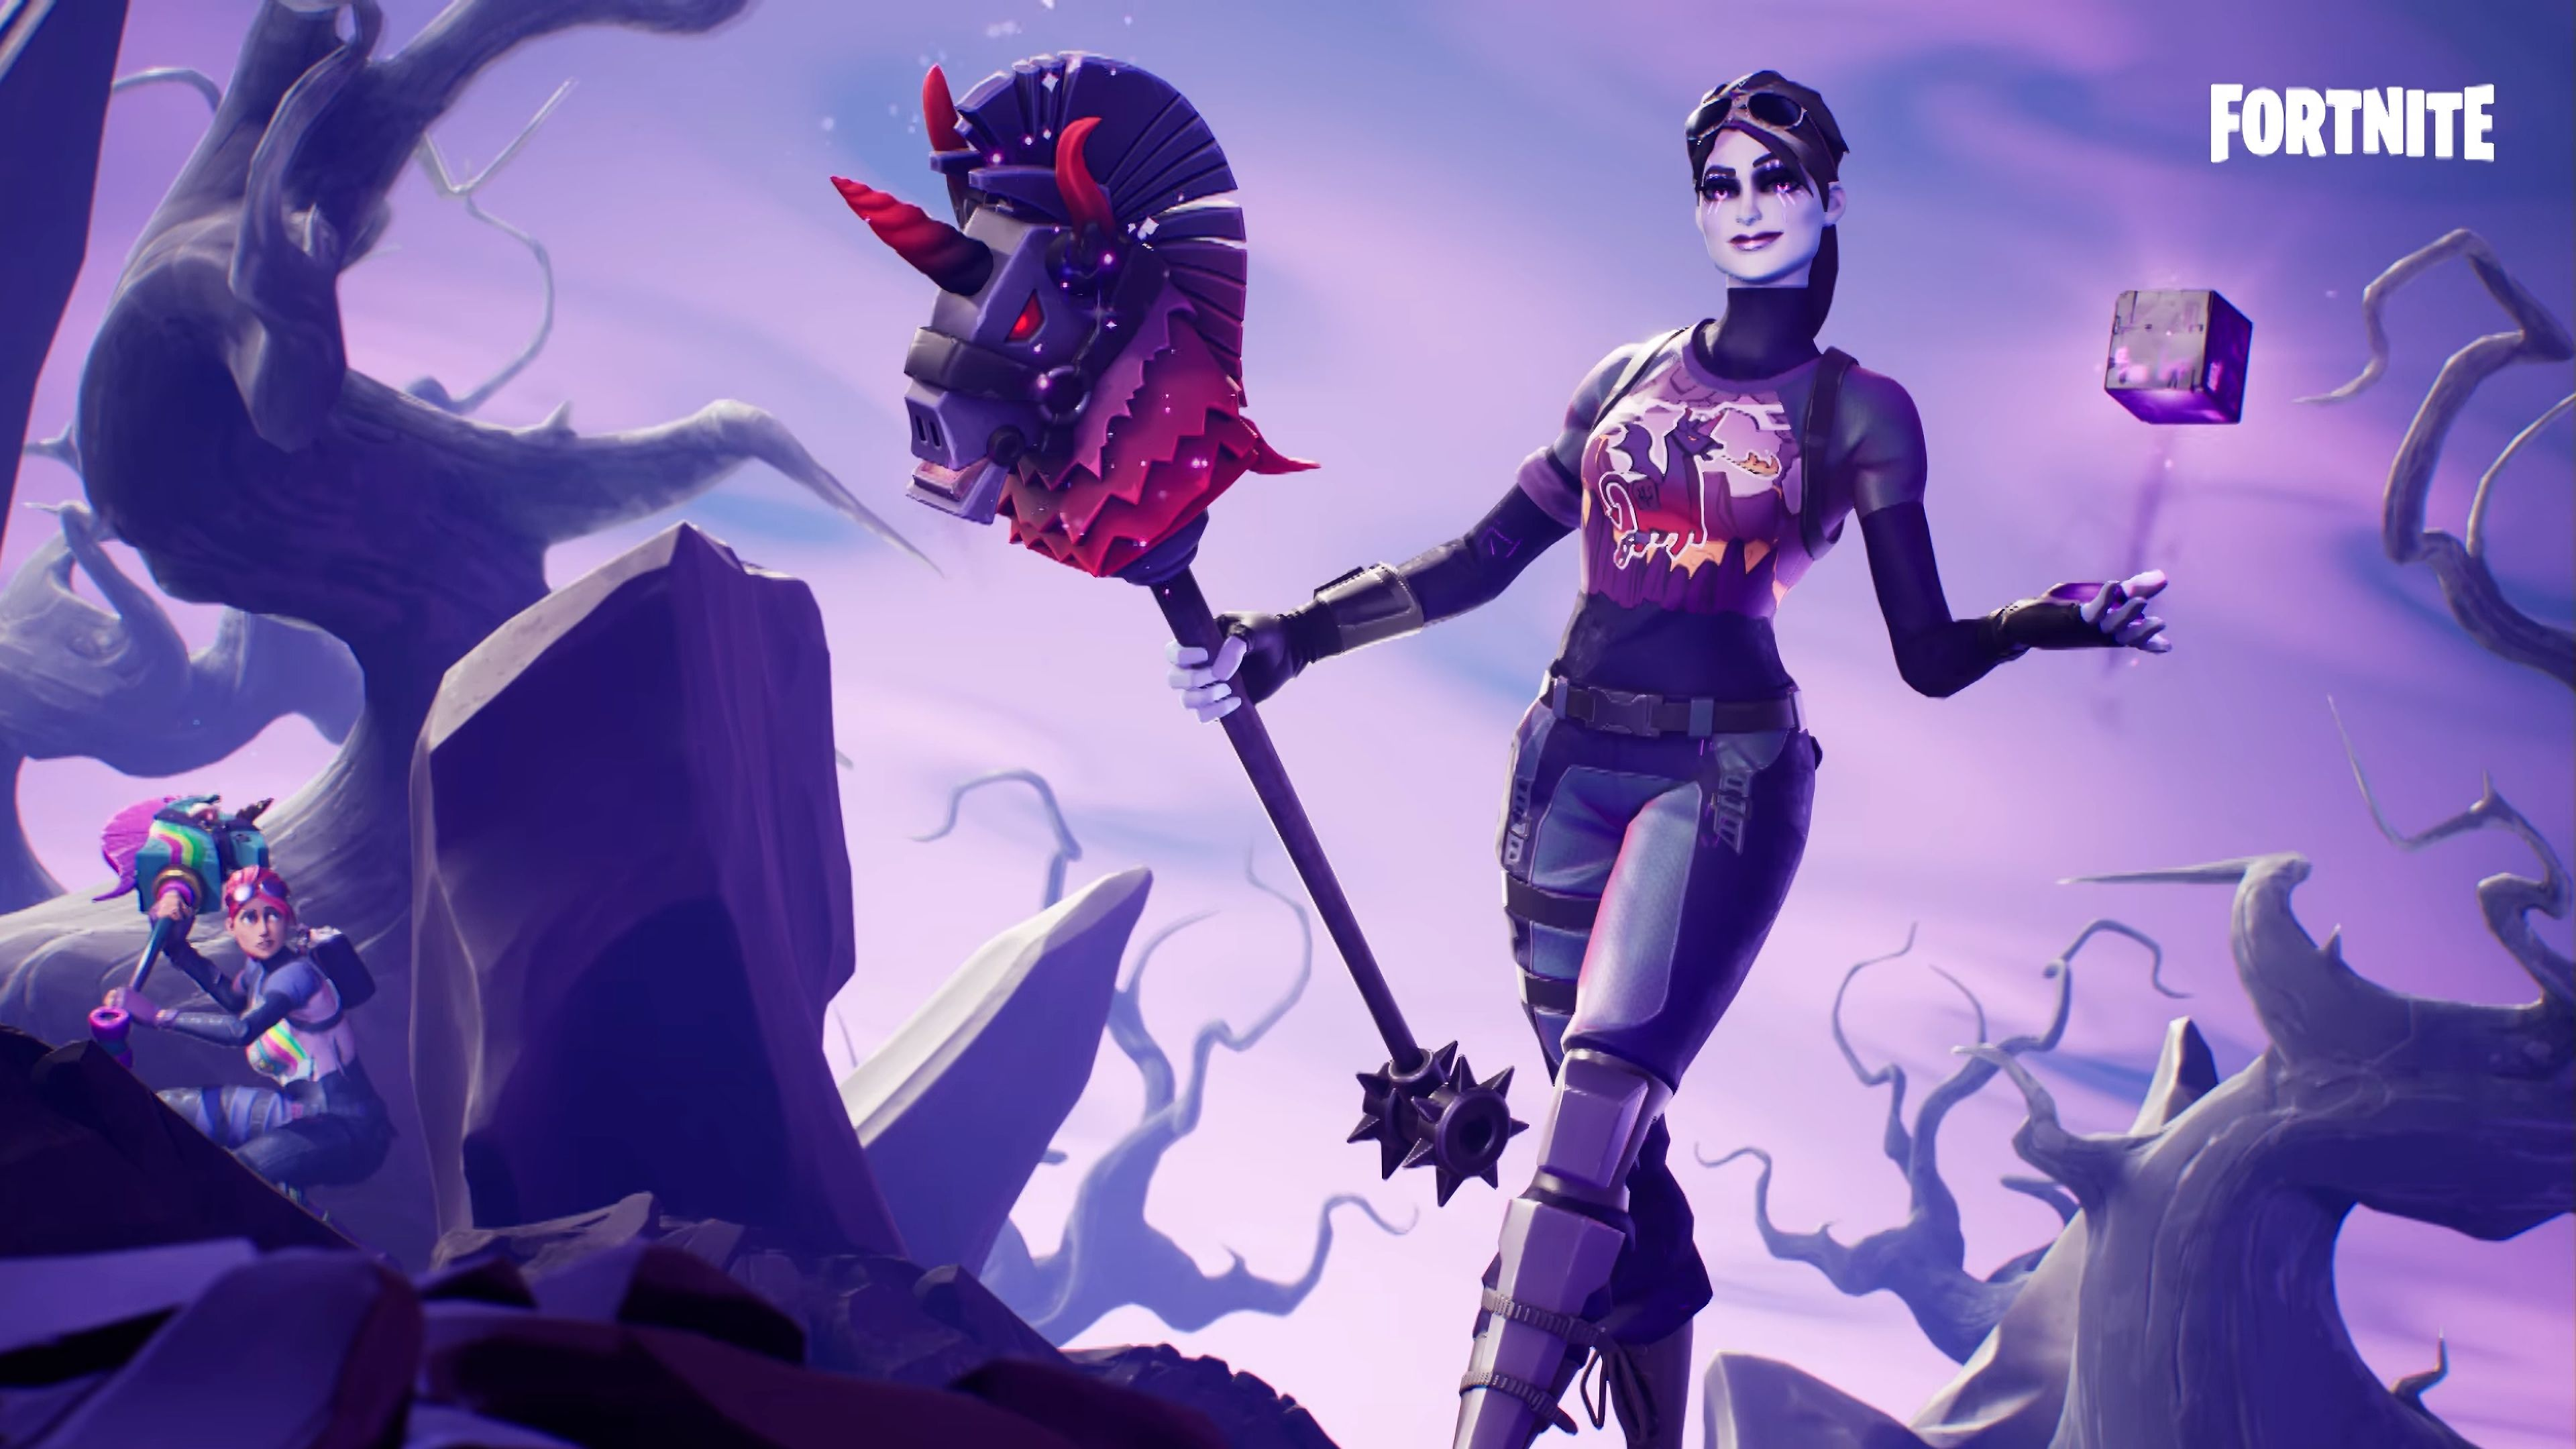 2840x2160 Dark Bomber Brite Bomber Fortnite Battle Royale Fortnite